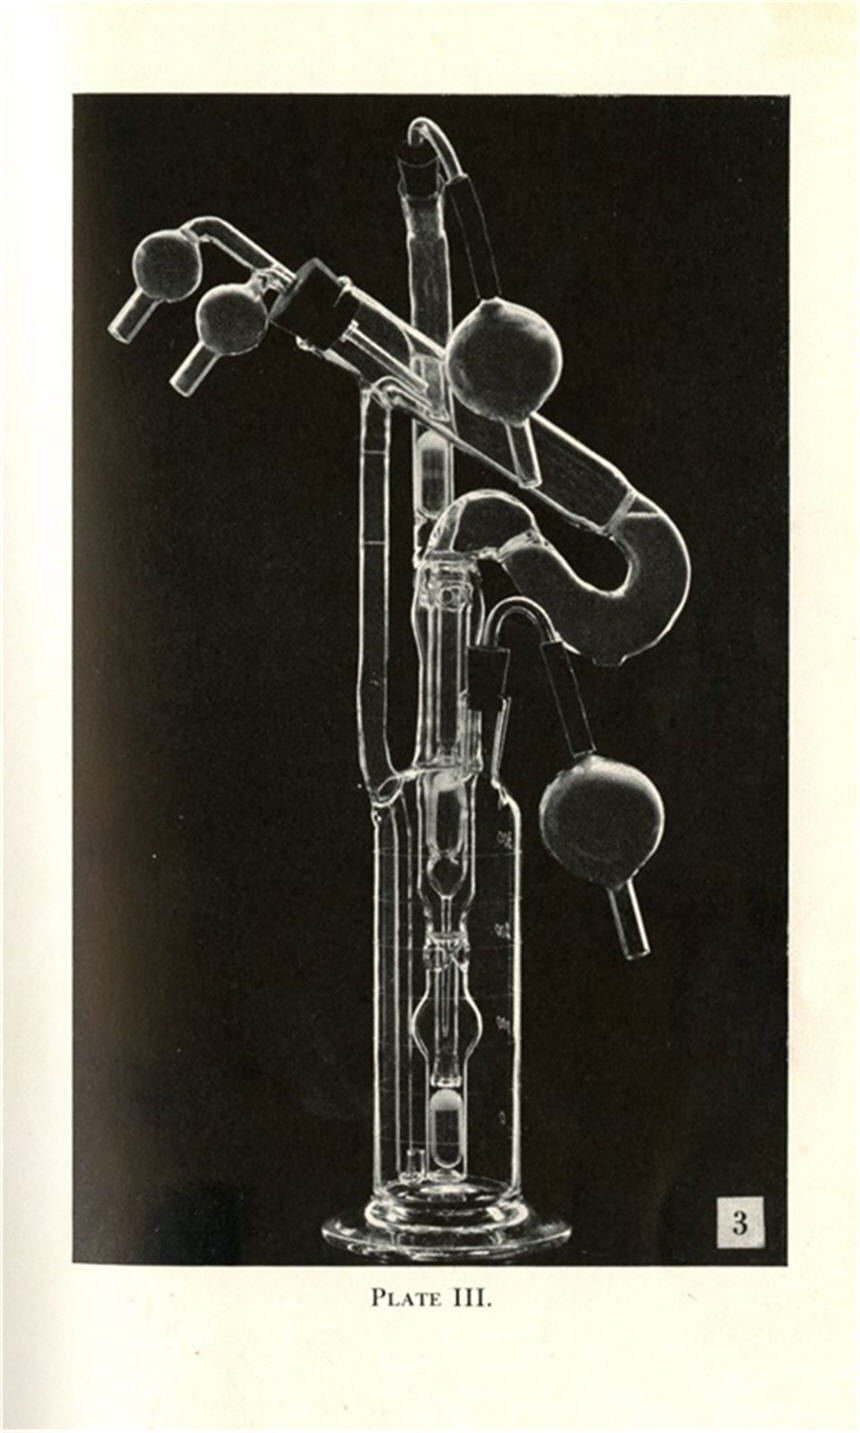 Tall, narrow, glass instrument with curved, cylindrical pipes and valves.